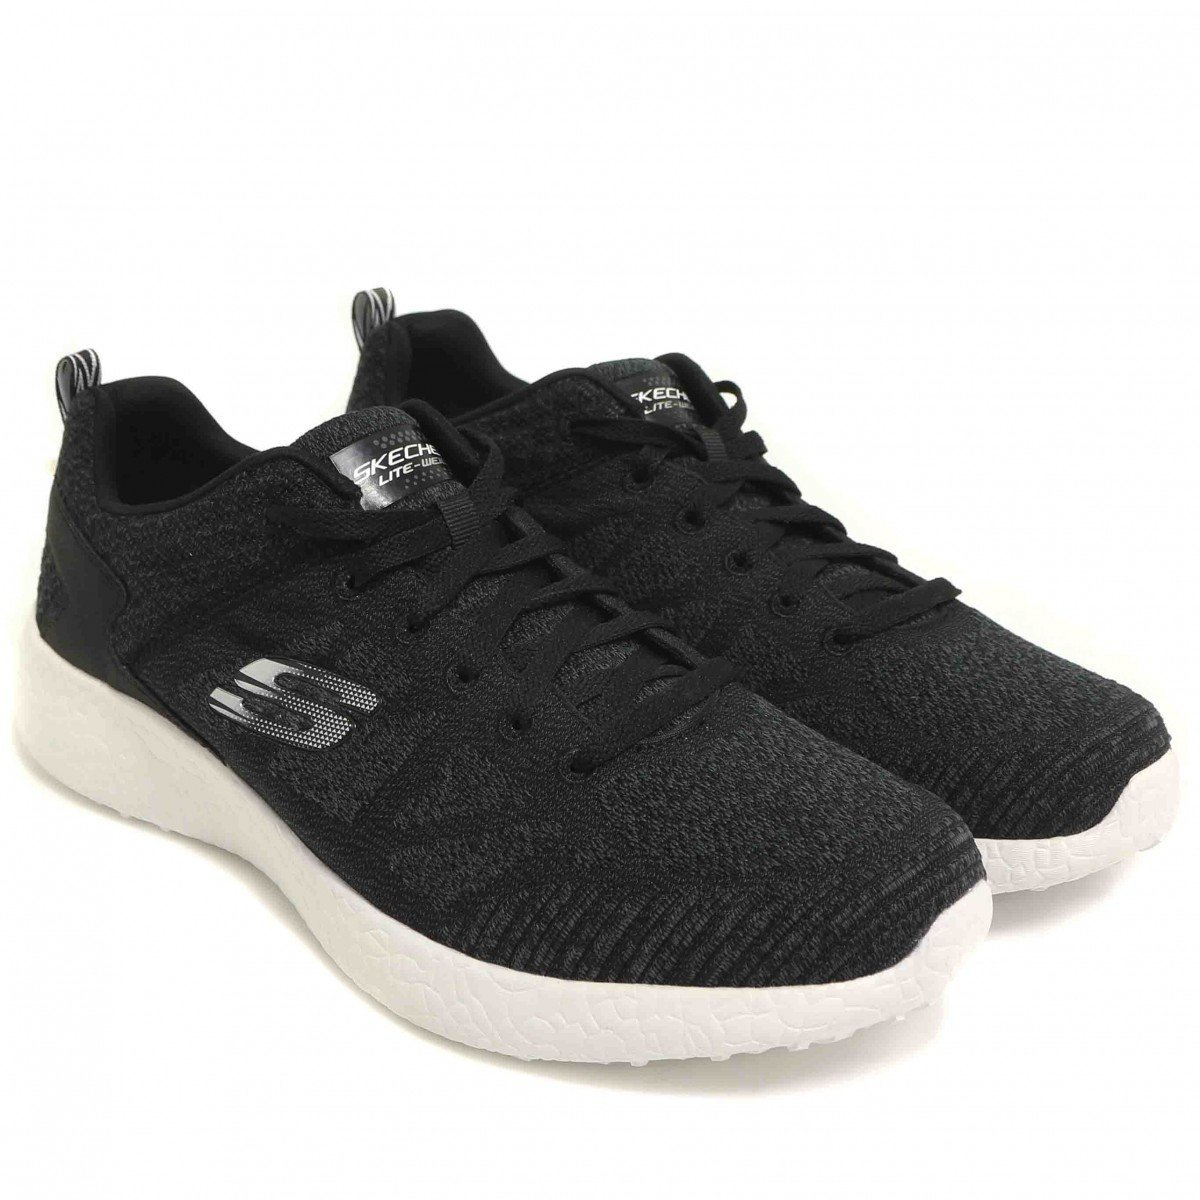 Performance Skechers Skechers Cooled Air Preto Tênis Preto Performance Air Cooled Burst Burst Tênis H0x8Fwnq